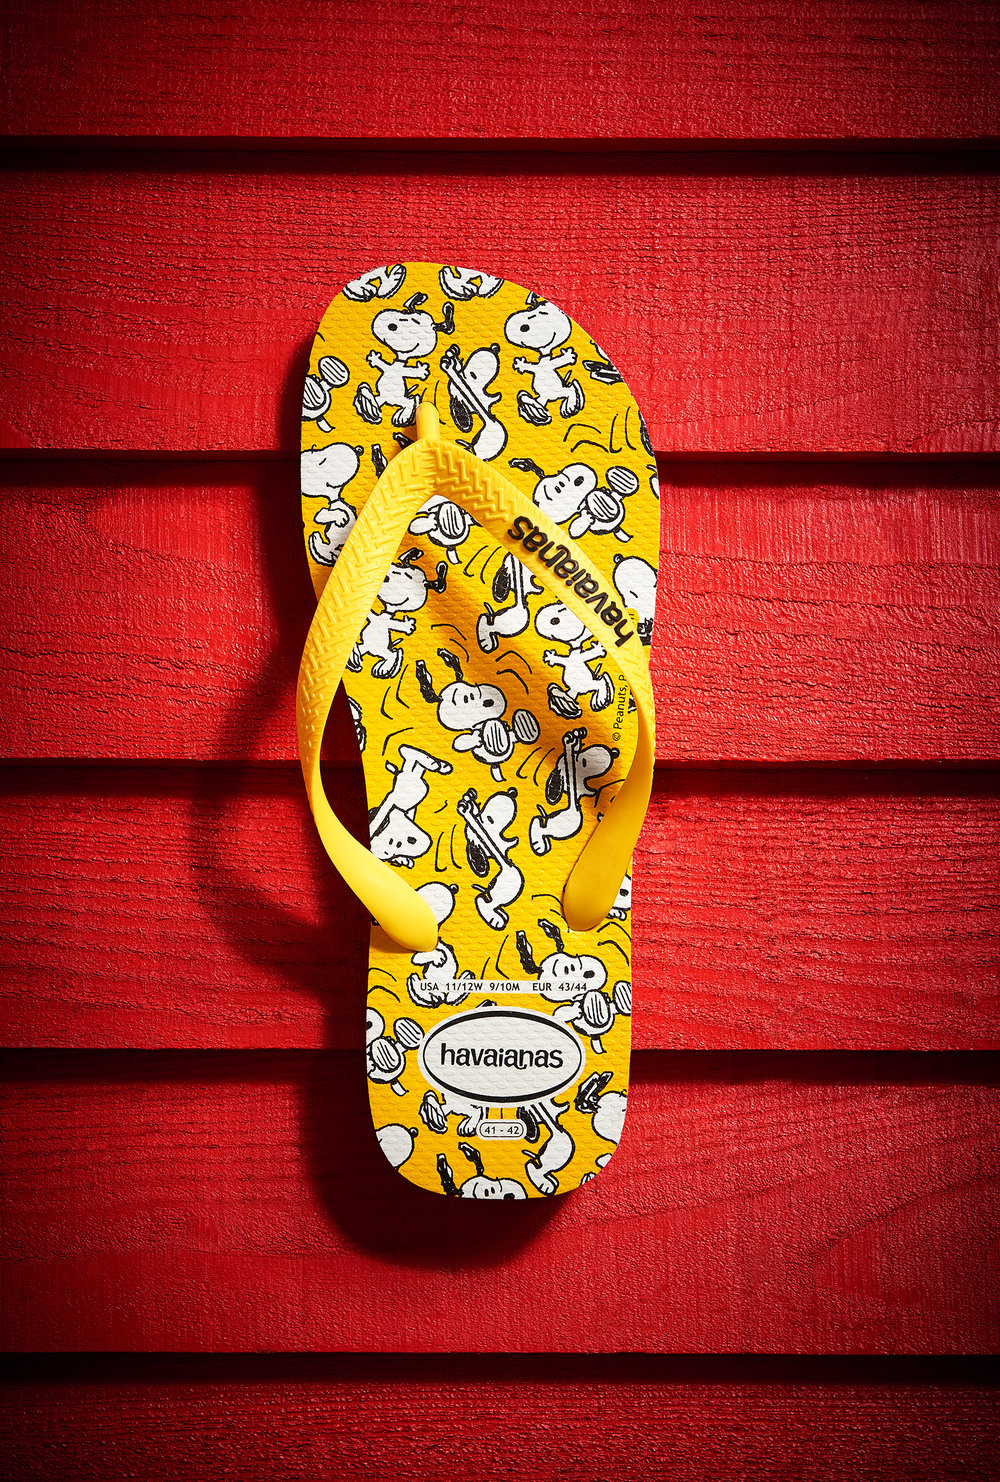 Product still life photography for a Havaianas, a footwear company featuring Snoopy and the Peanuts gang